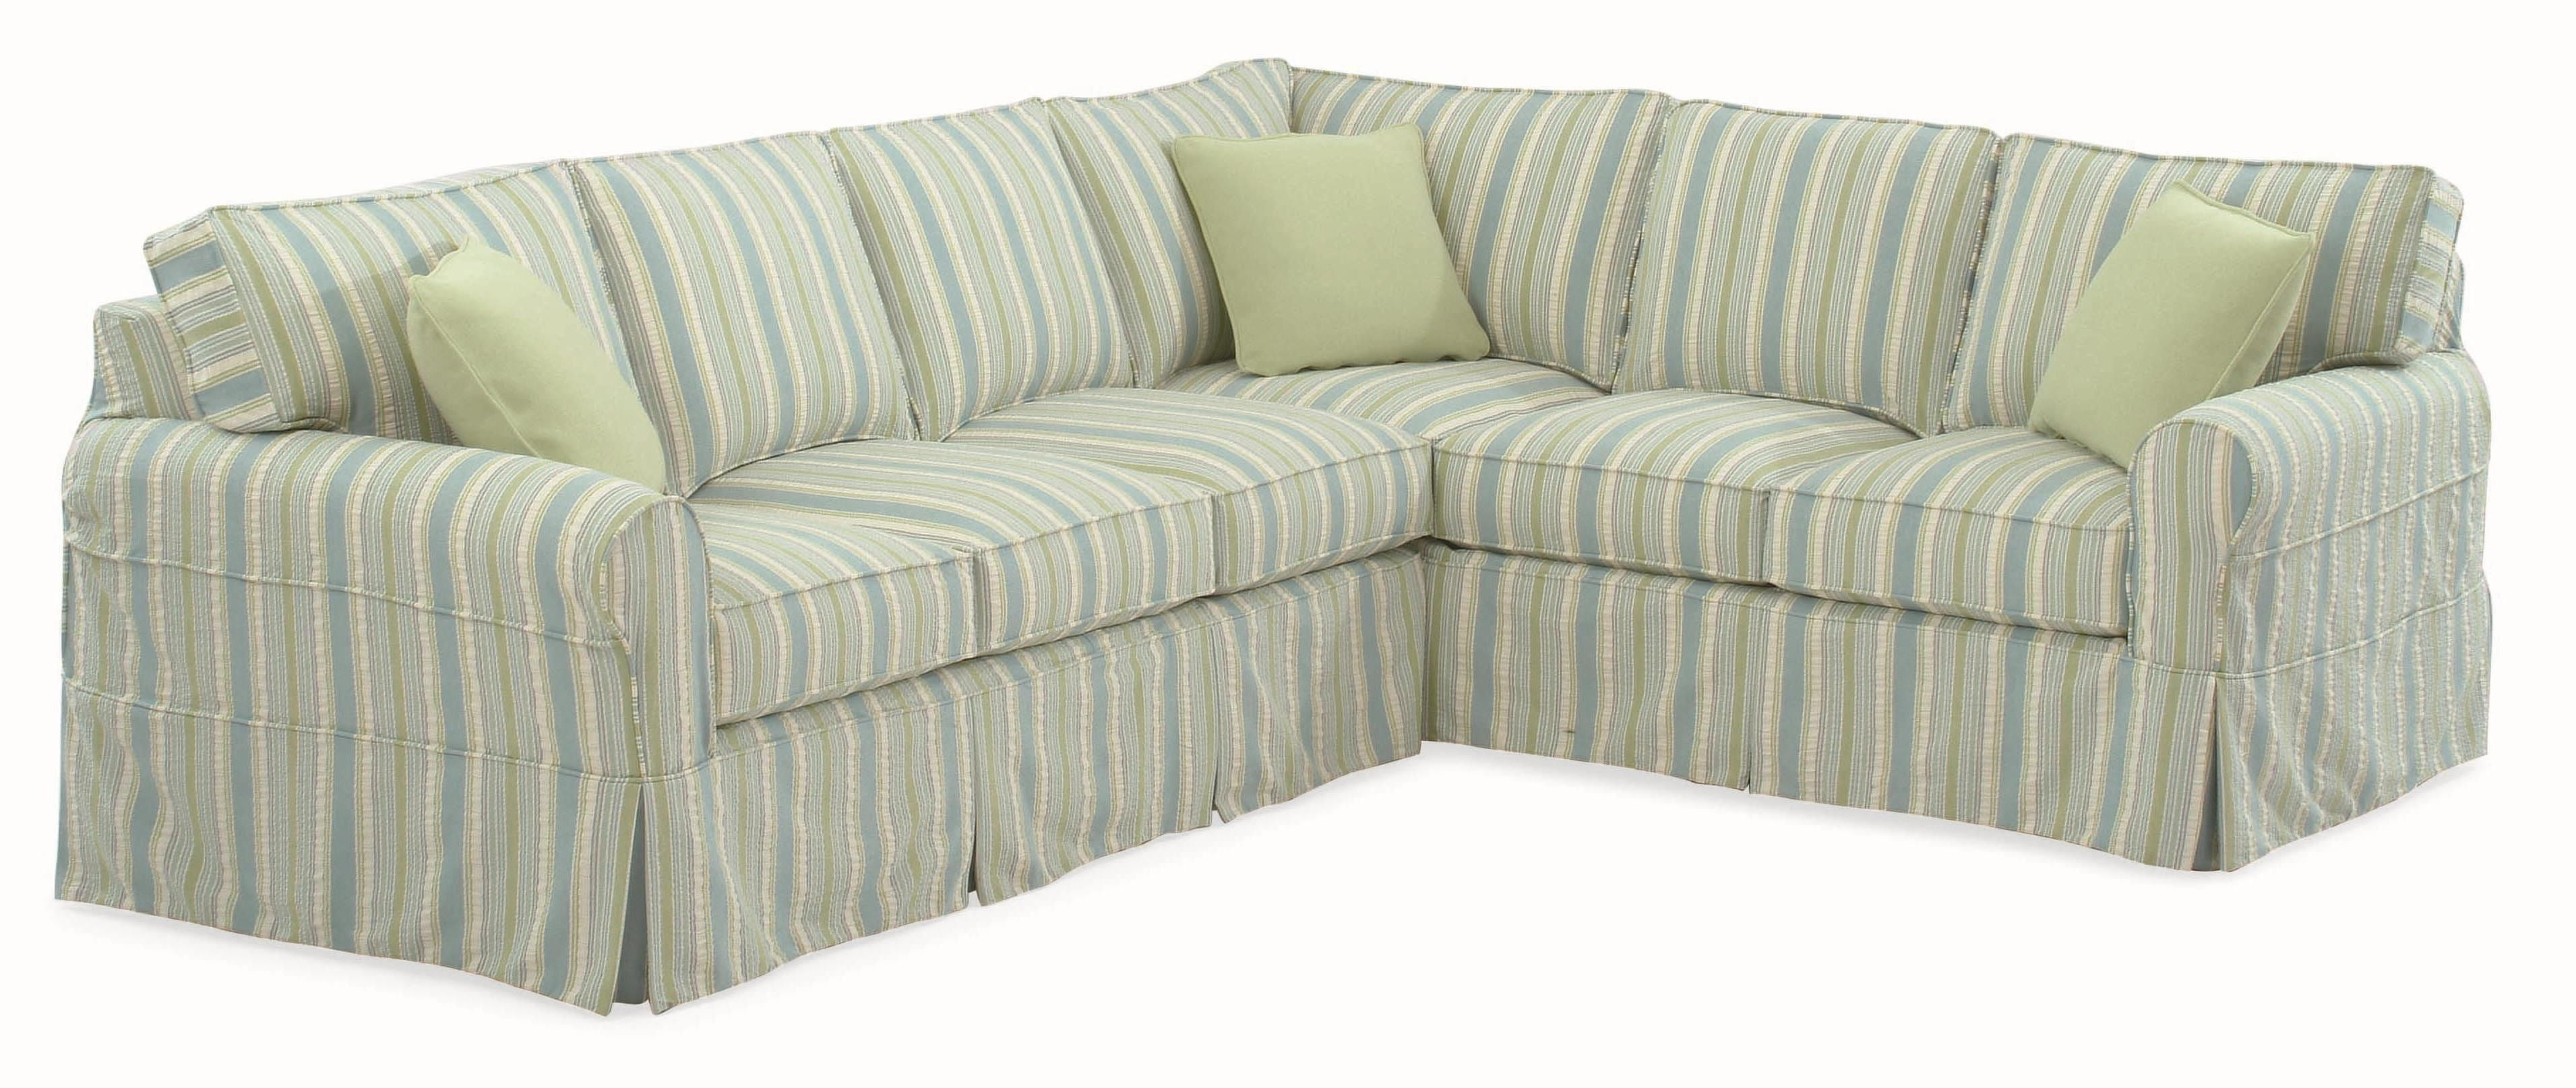 Sectional Sofa Slipcovers (View 8 of 15)